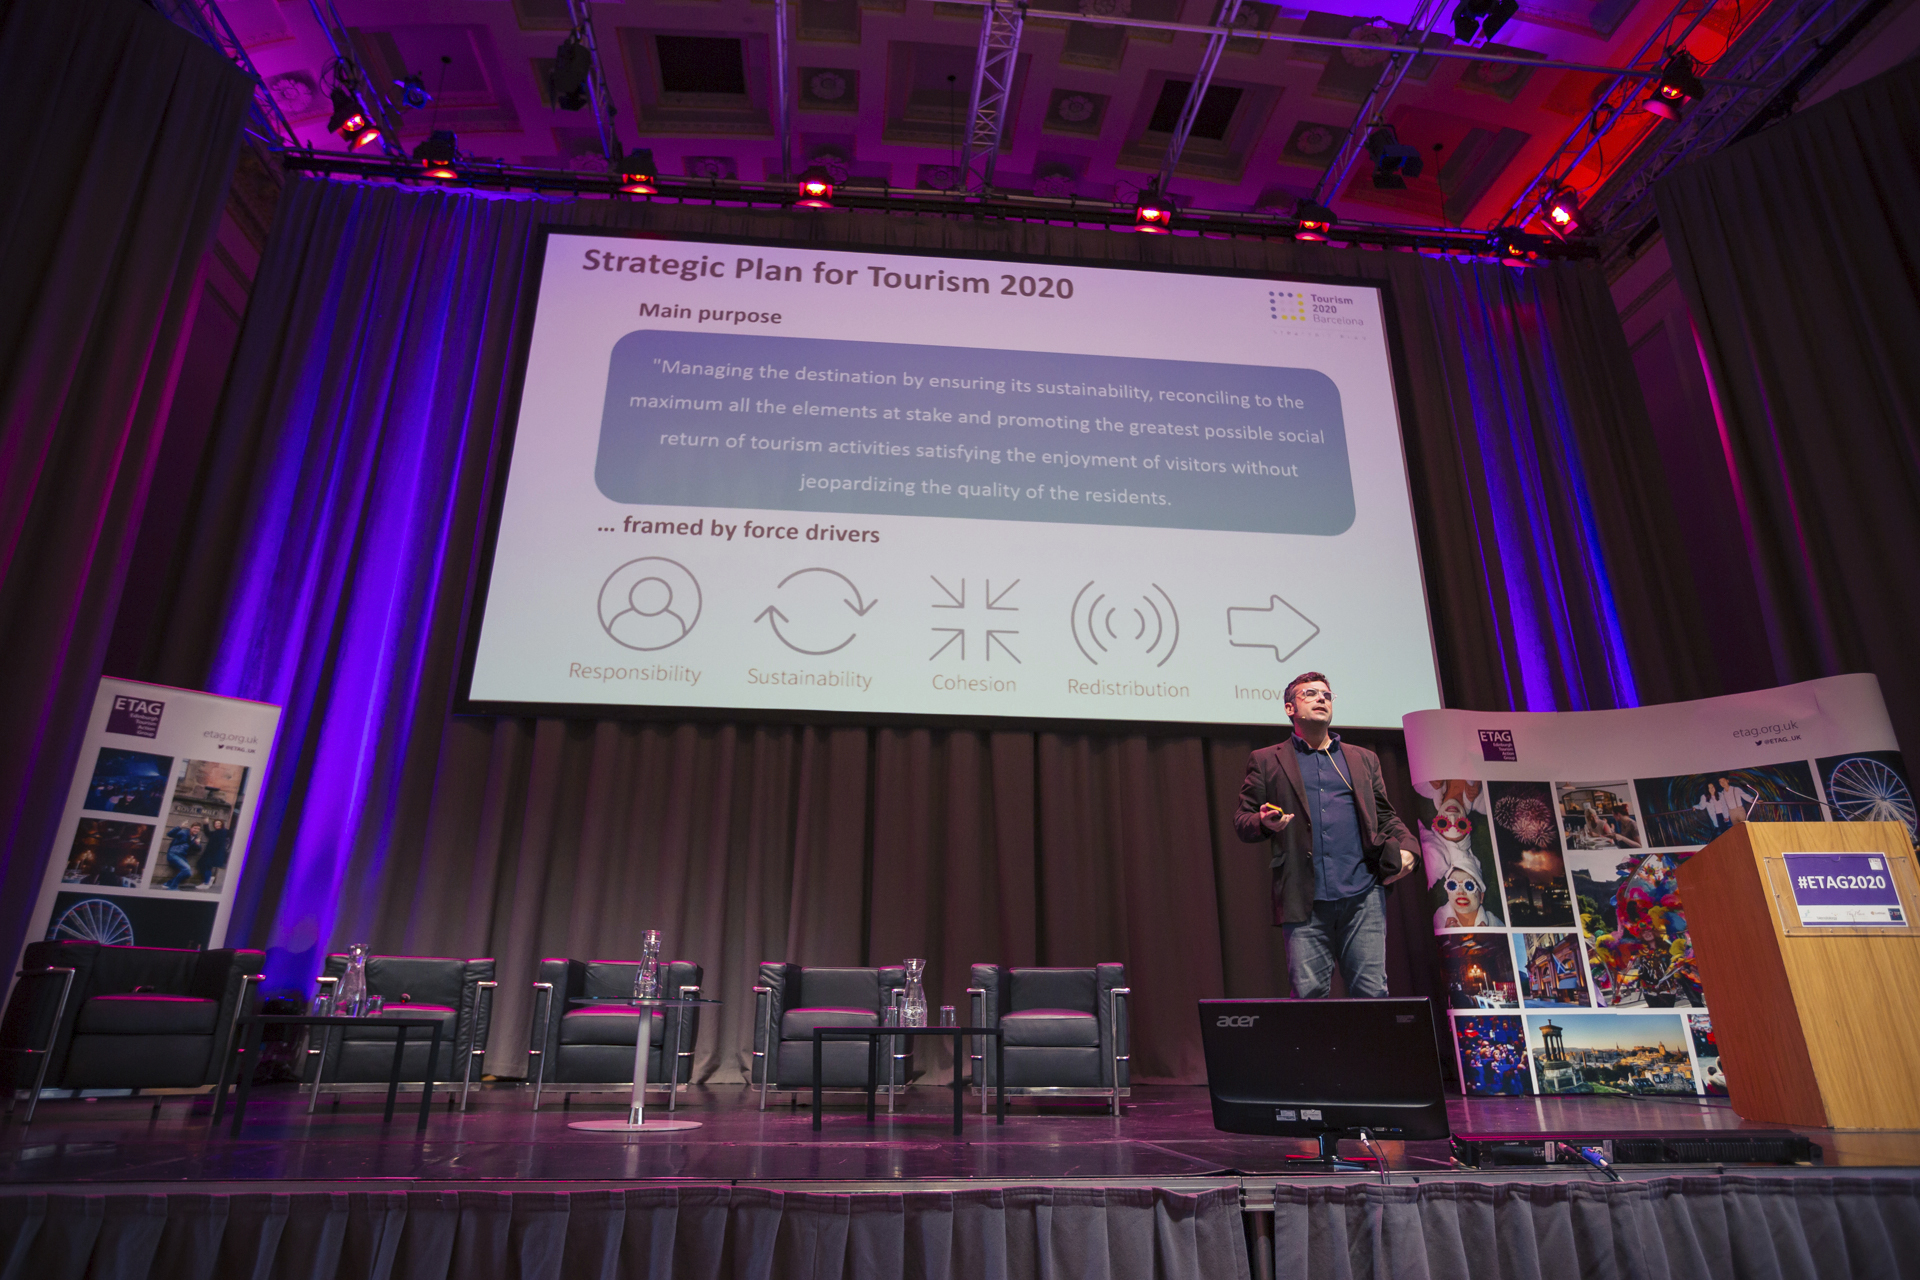 Assembly Rooms Edinburgh launches hybrid solution for events industry - ETAG 2020 event- Business News Scotland